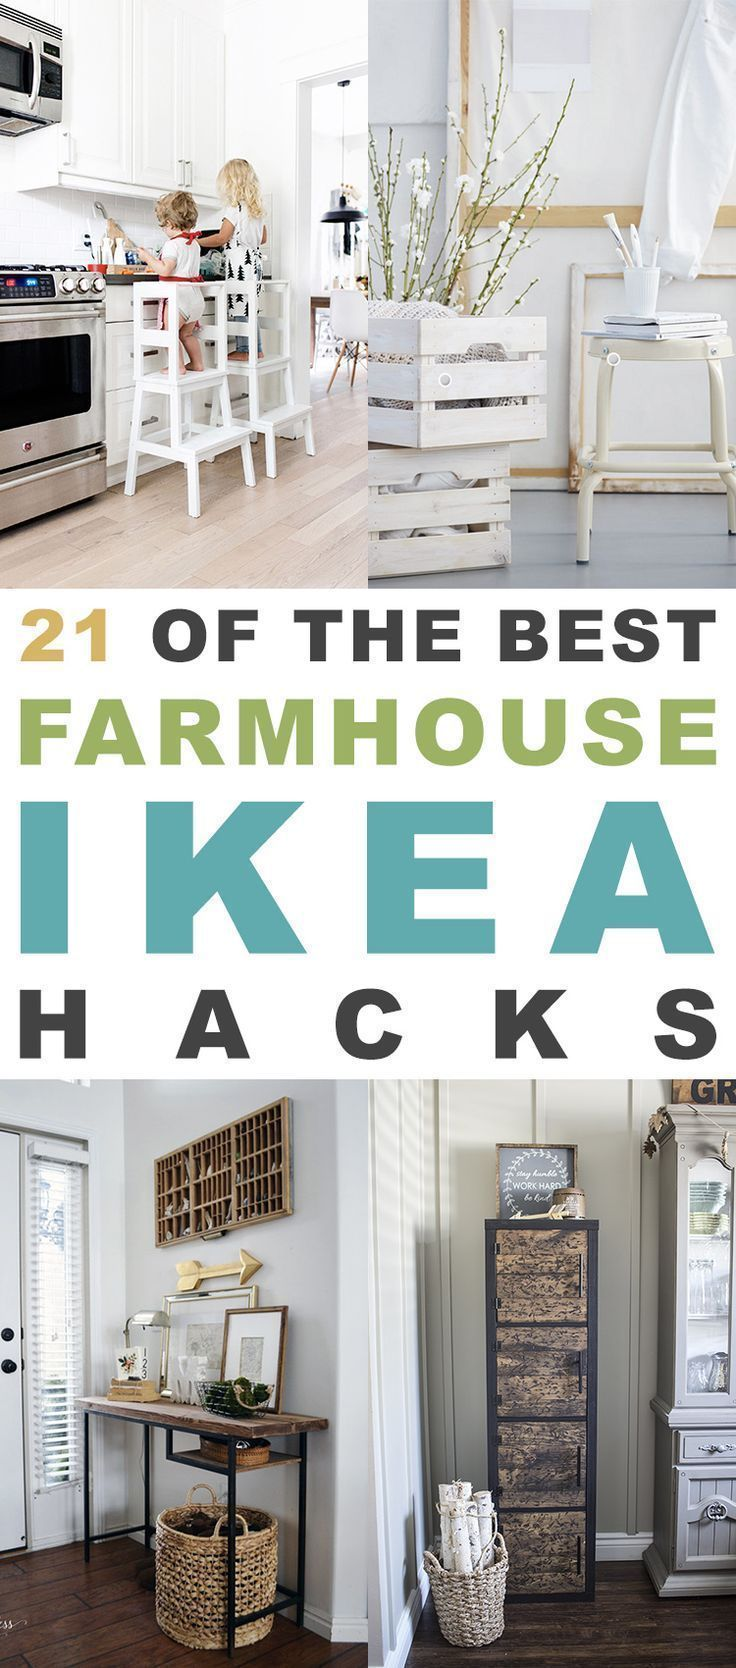 21 of The BEST Farmhouse IKEA Hacks All of these fabulous Hacks will make your Farmhouse SMILE!  Quick...Easy and Budget friendly!  #IKEAHacks #IKEAHack #FarmhouseIKEAHacks #IKEAHacksFarmhouse #Farmhouse #FarmhouseHacks #IKEA #FixerUpper